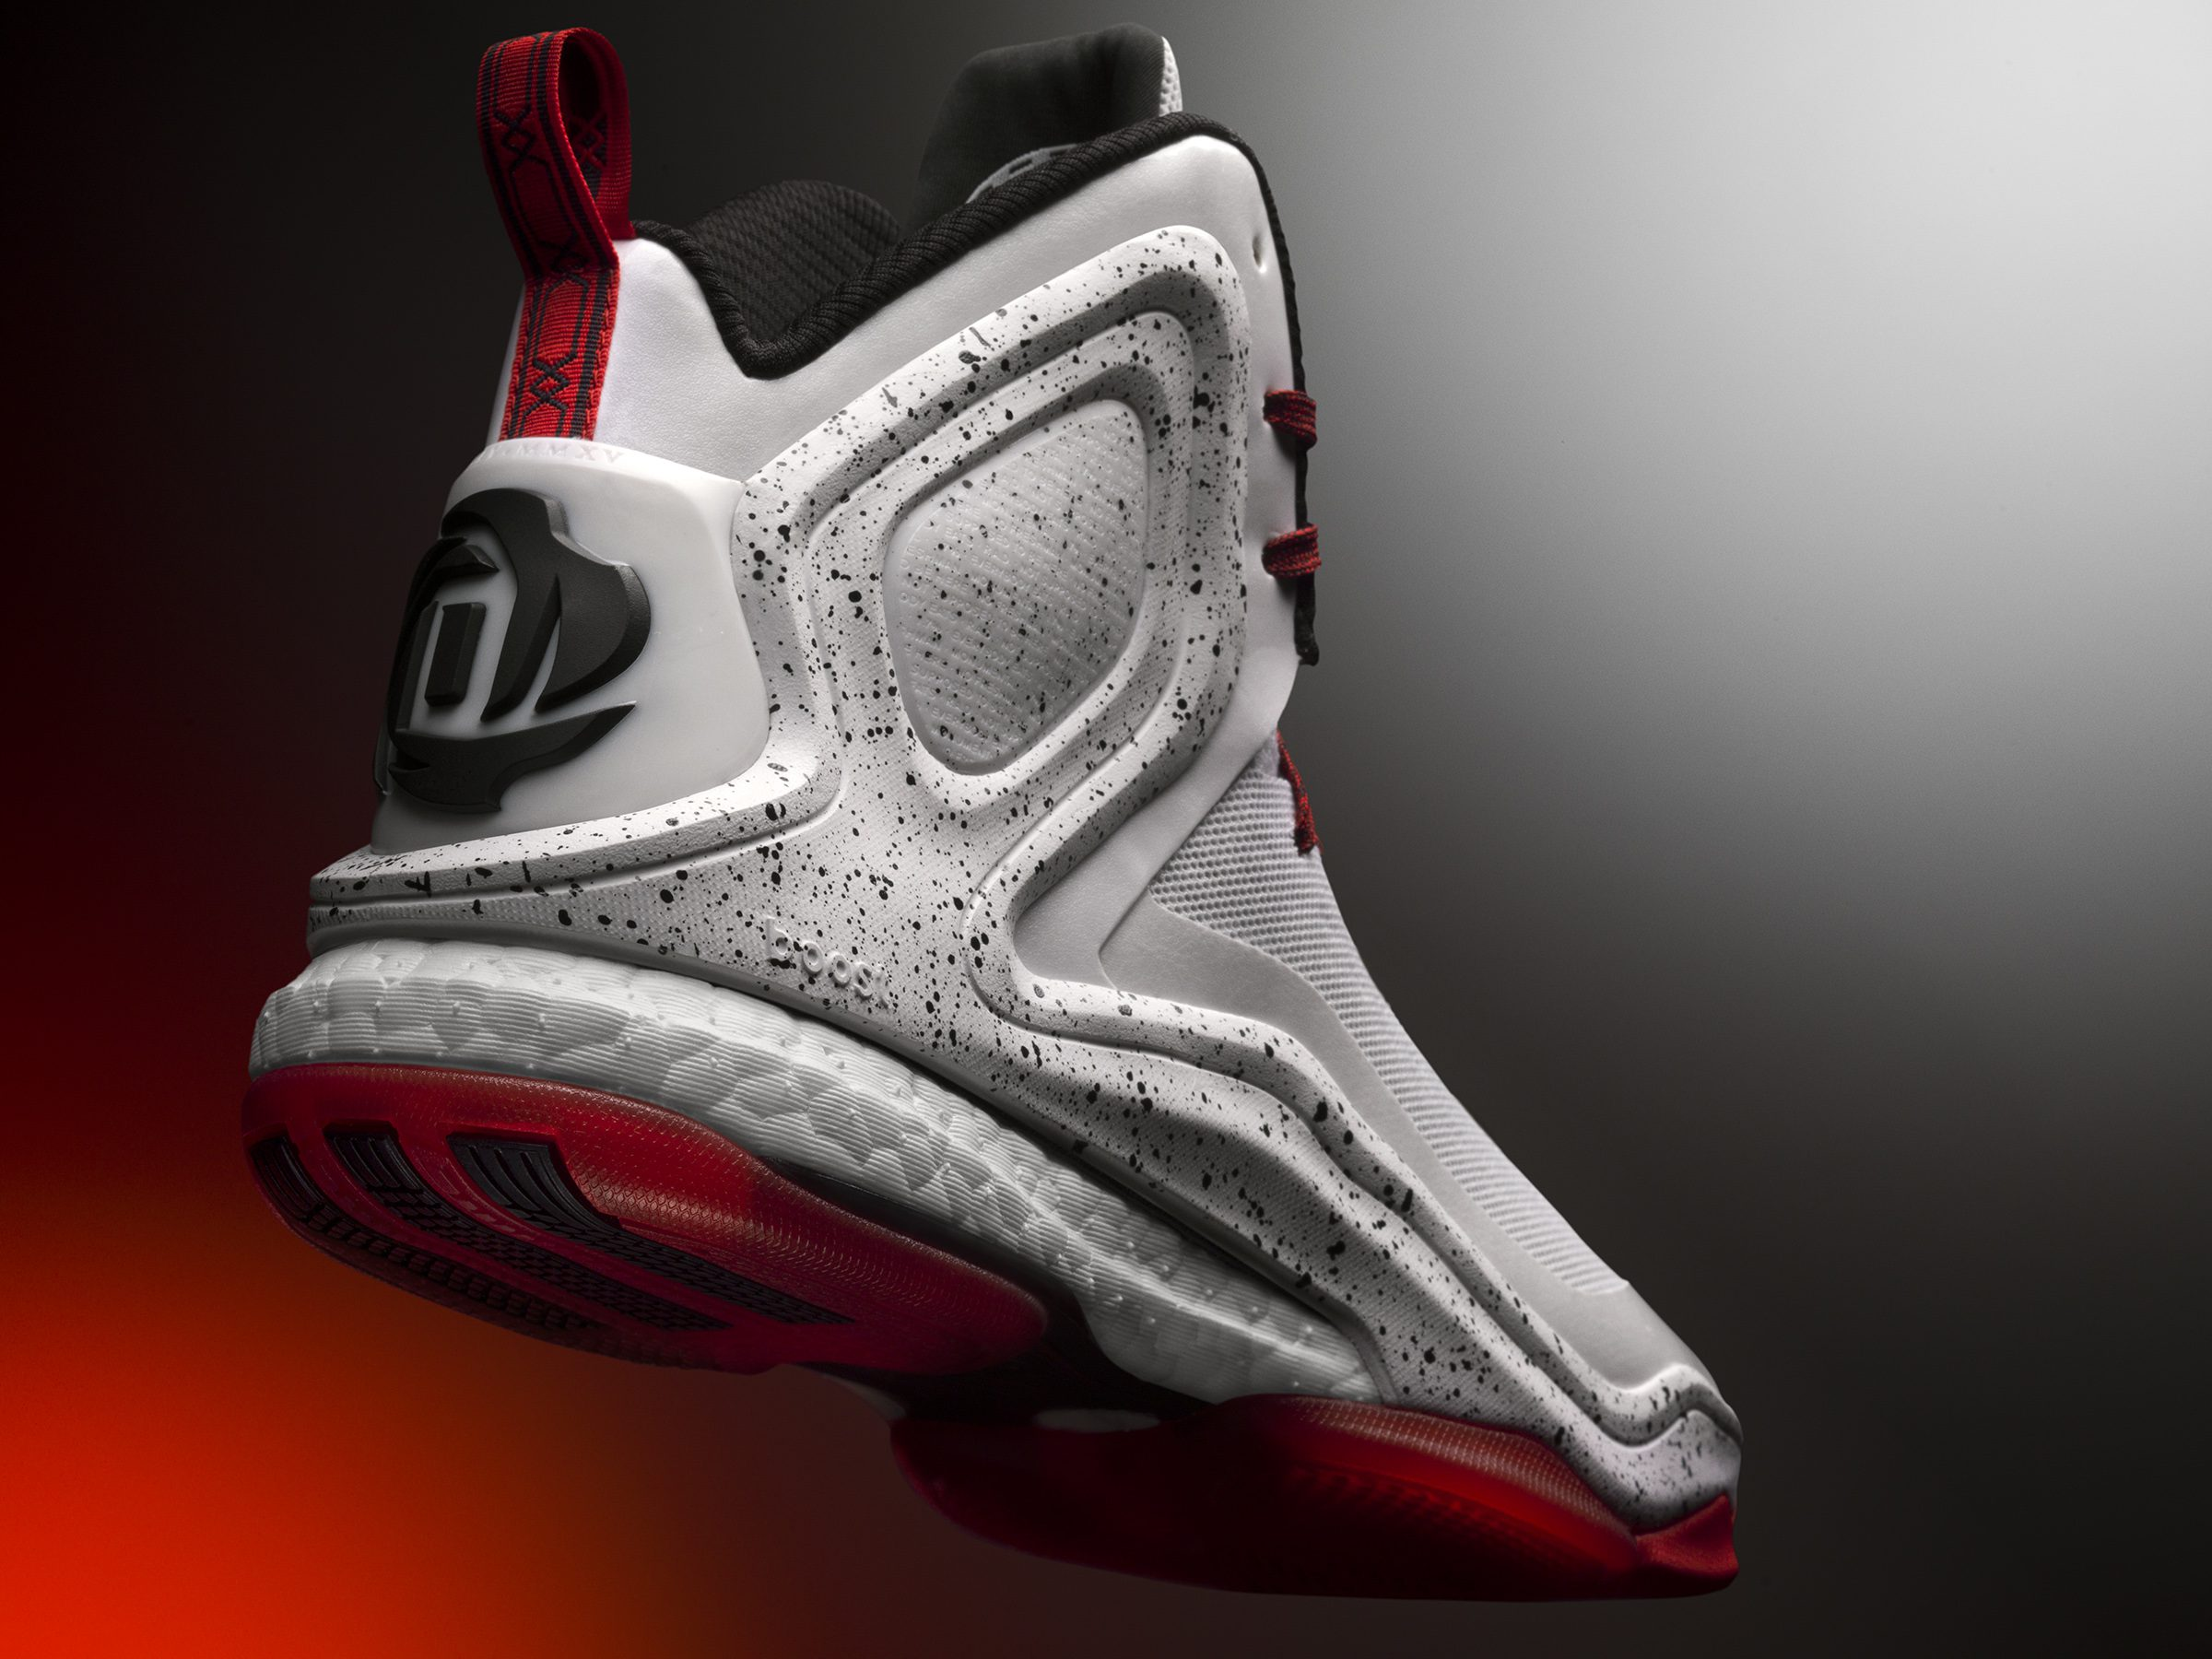 fb63417f72 Courtesy of adidas. adidas today unveiled two new colorways of the D Rose 5  Boost ...